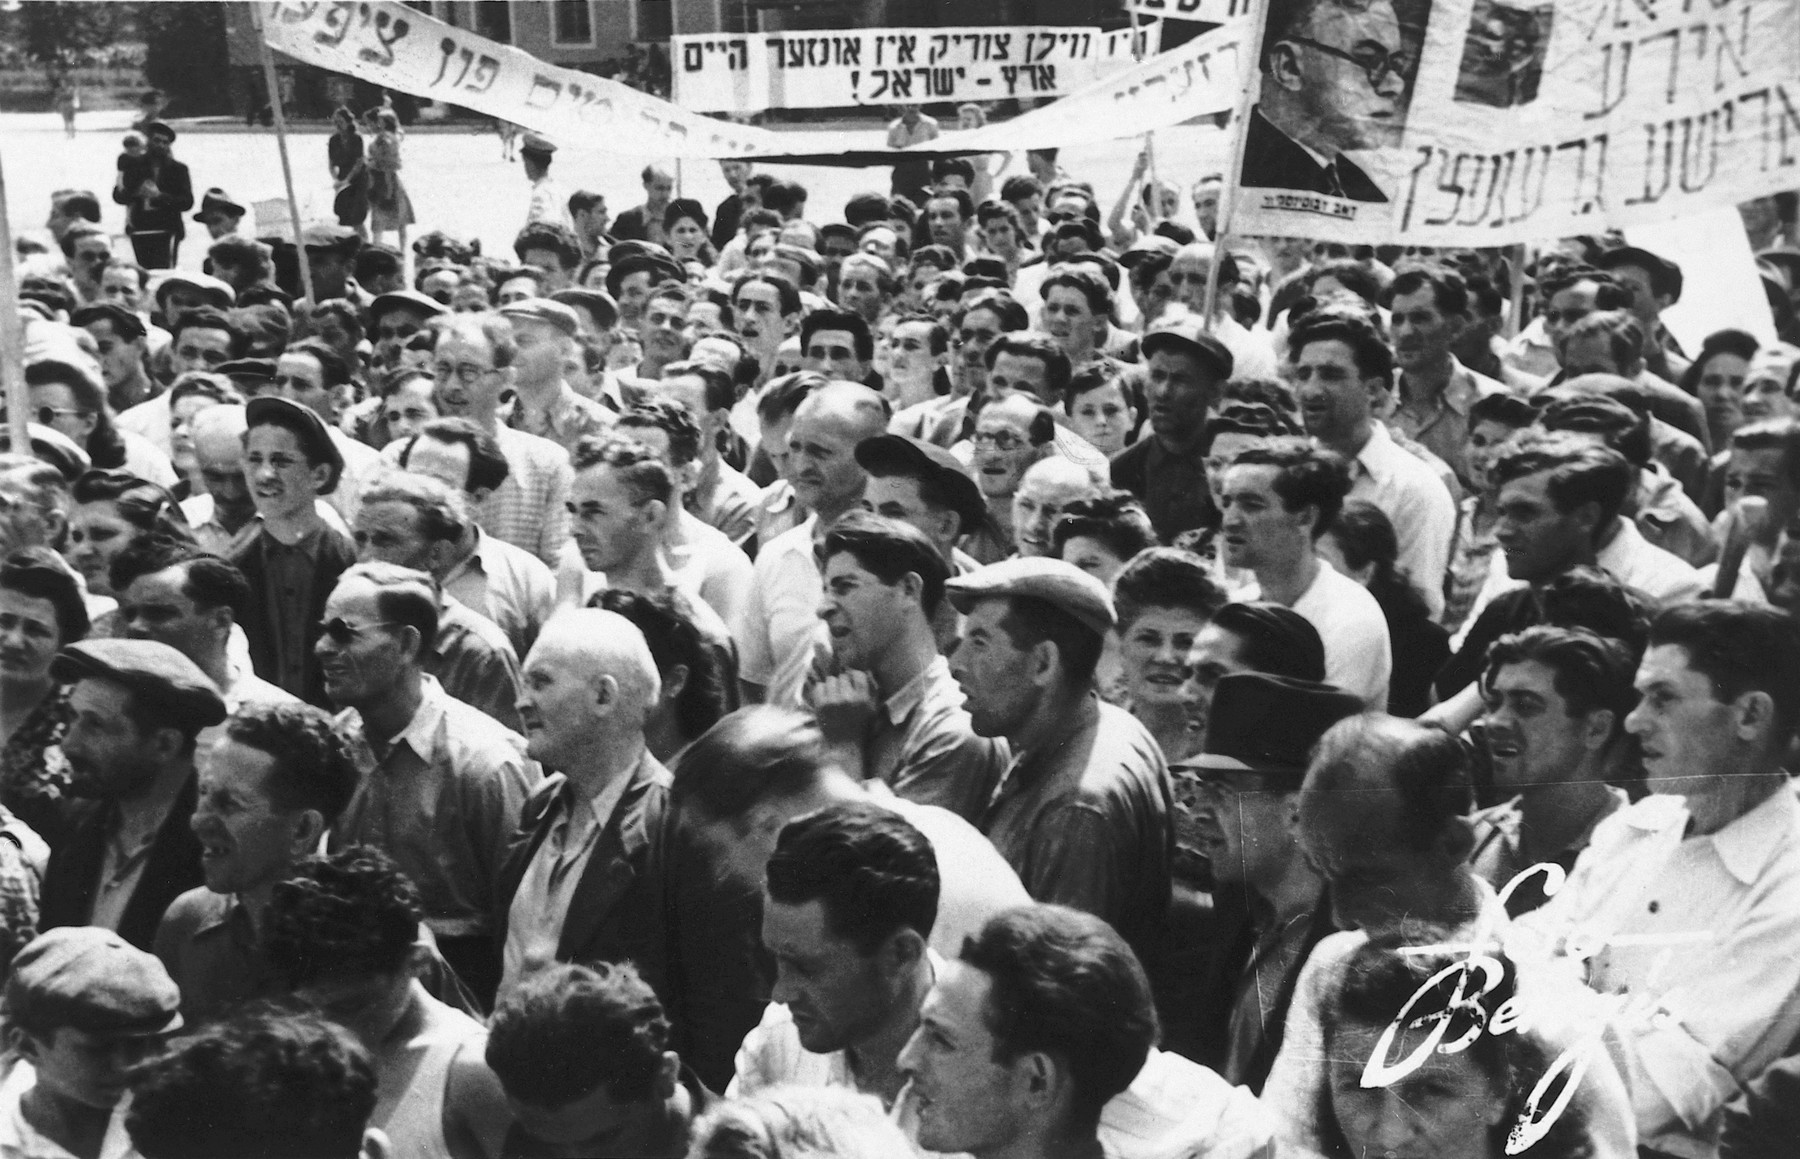 Jewish DPs celebrate the partition of Palestine in a large demonstration in the Stuttgart displaced person's camp.